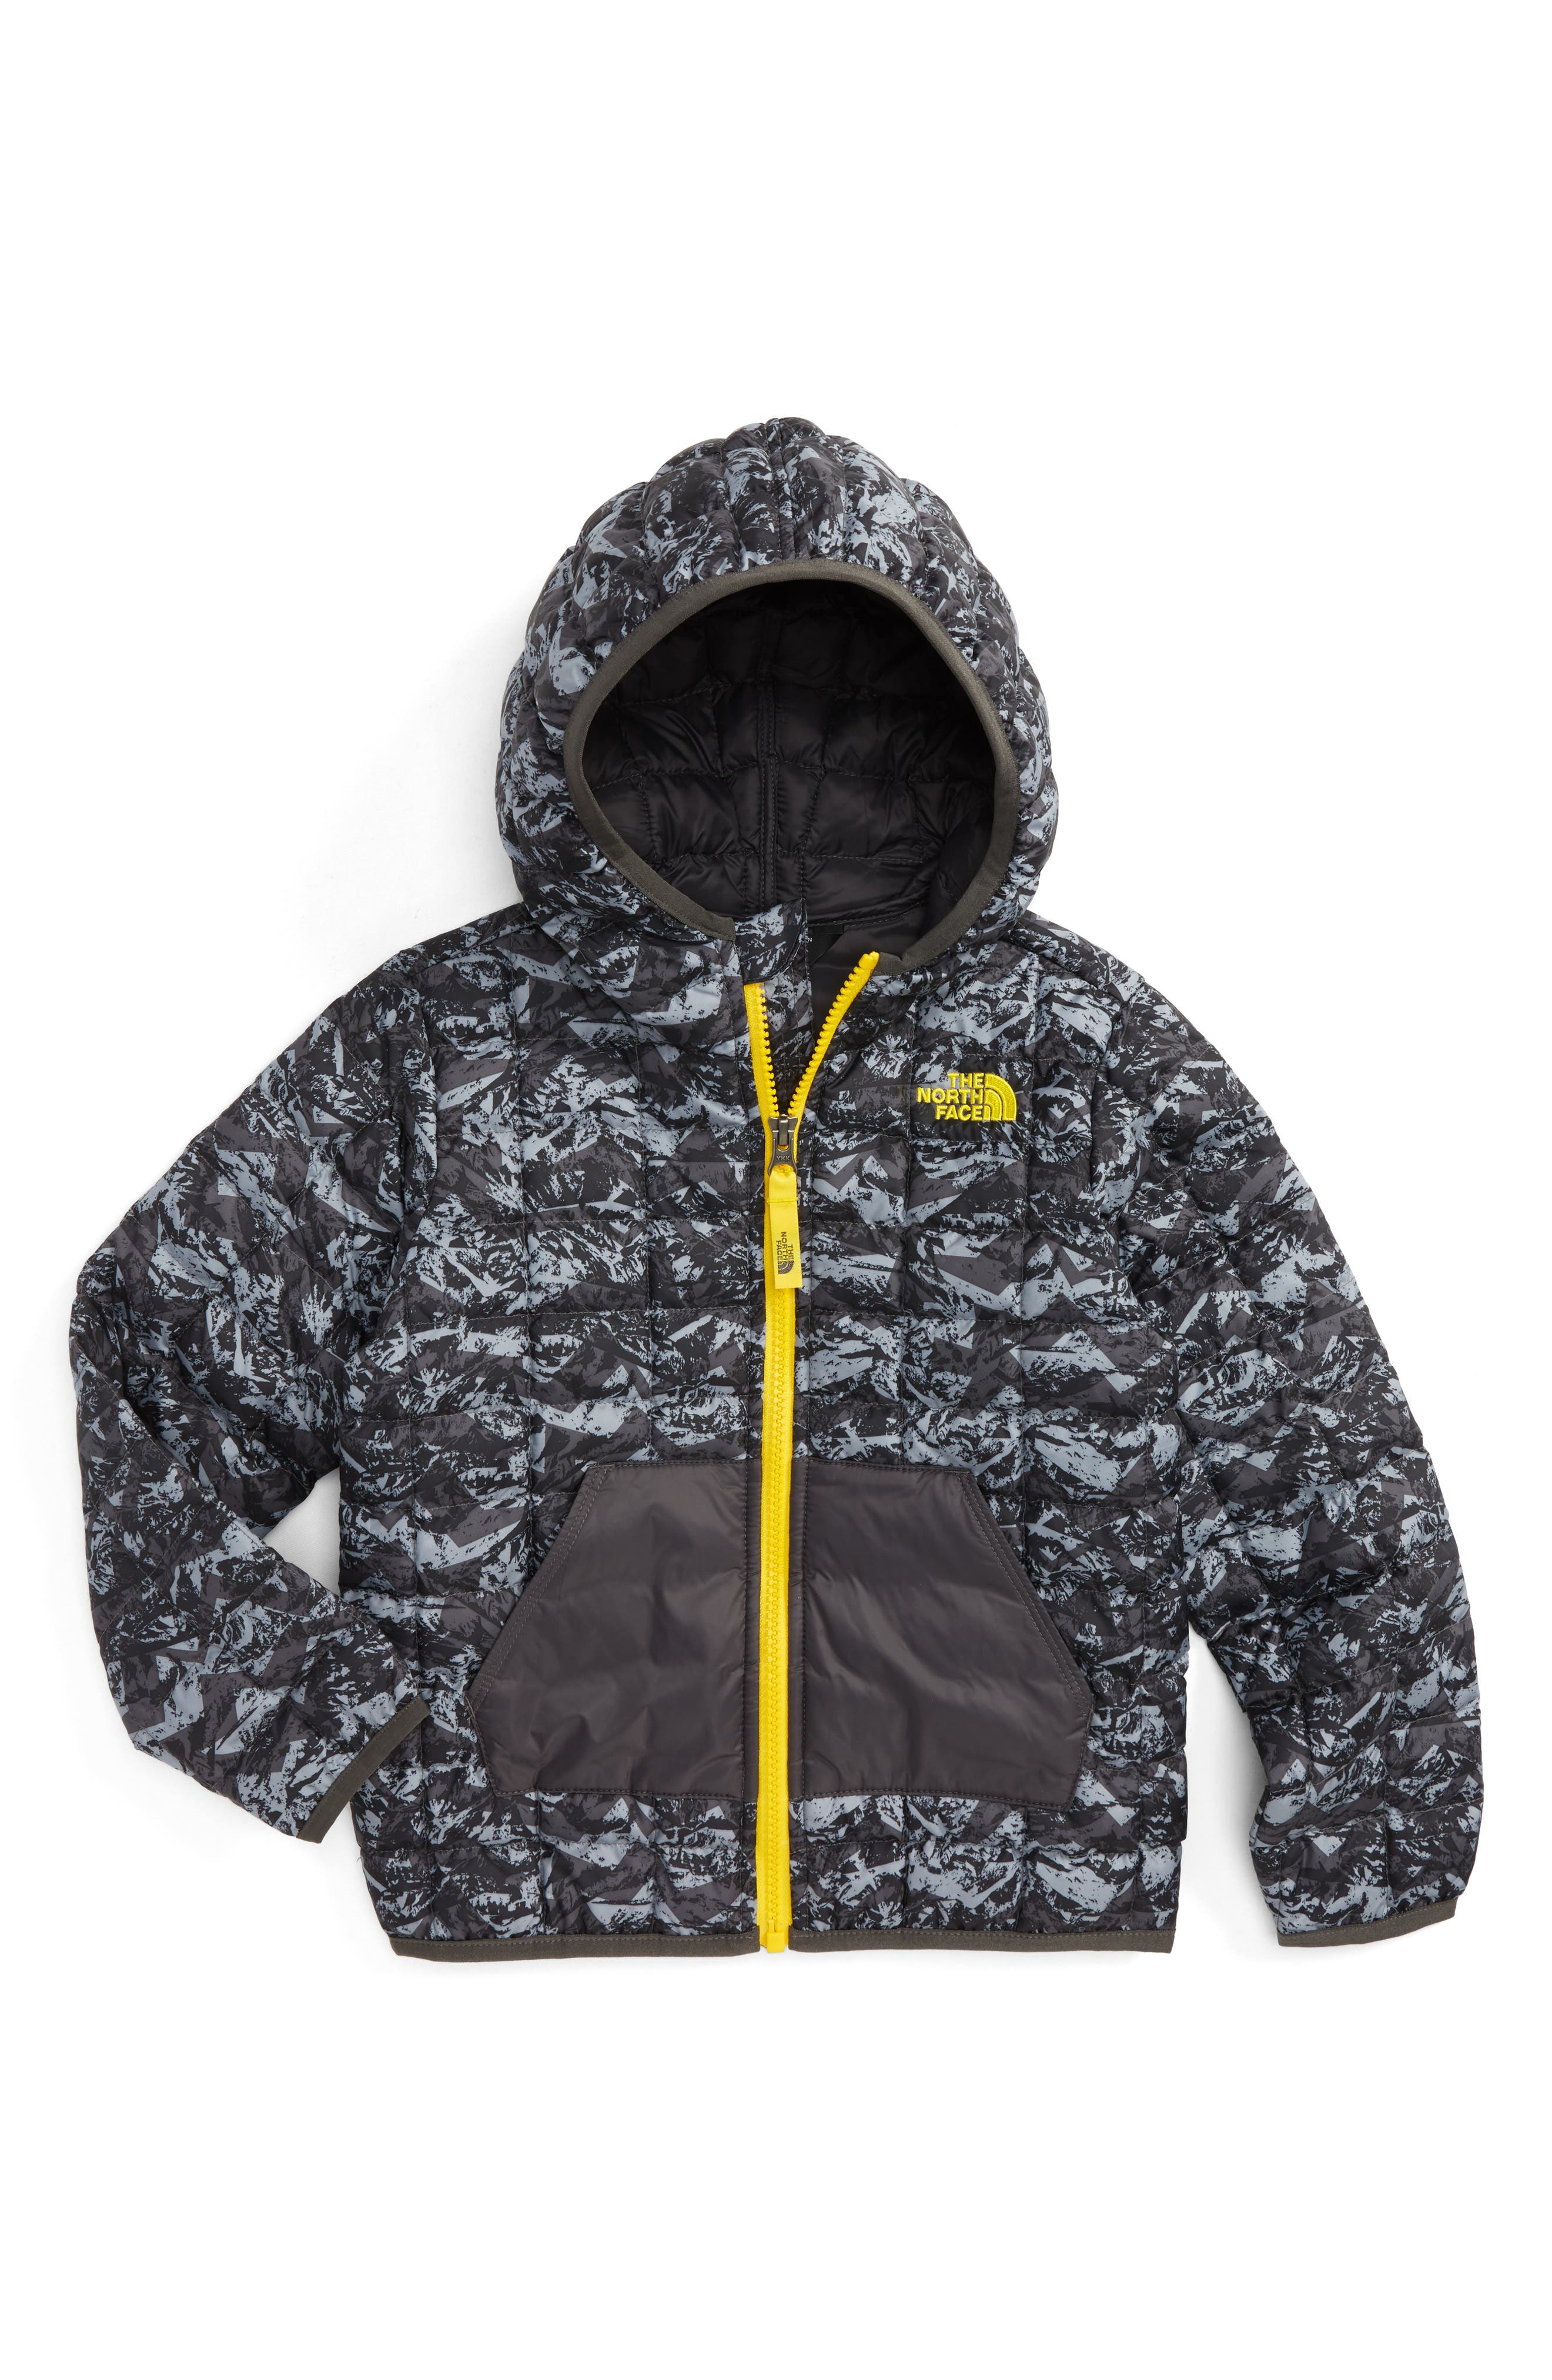 Main Image - The North Face ThermoBall™ PrimaLoft® Hoodie Jacket (Toddler Boys & Little Boys)